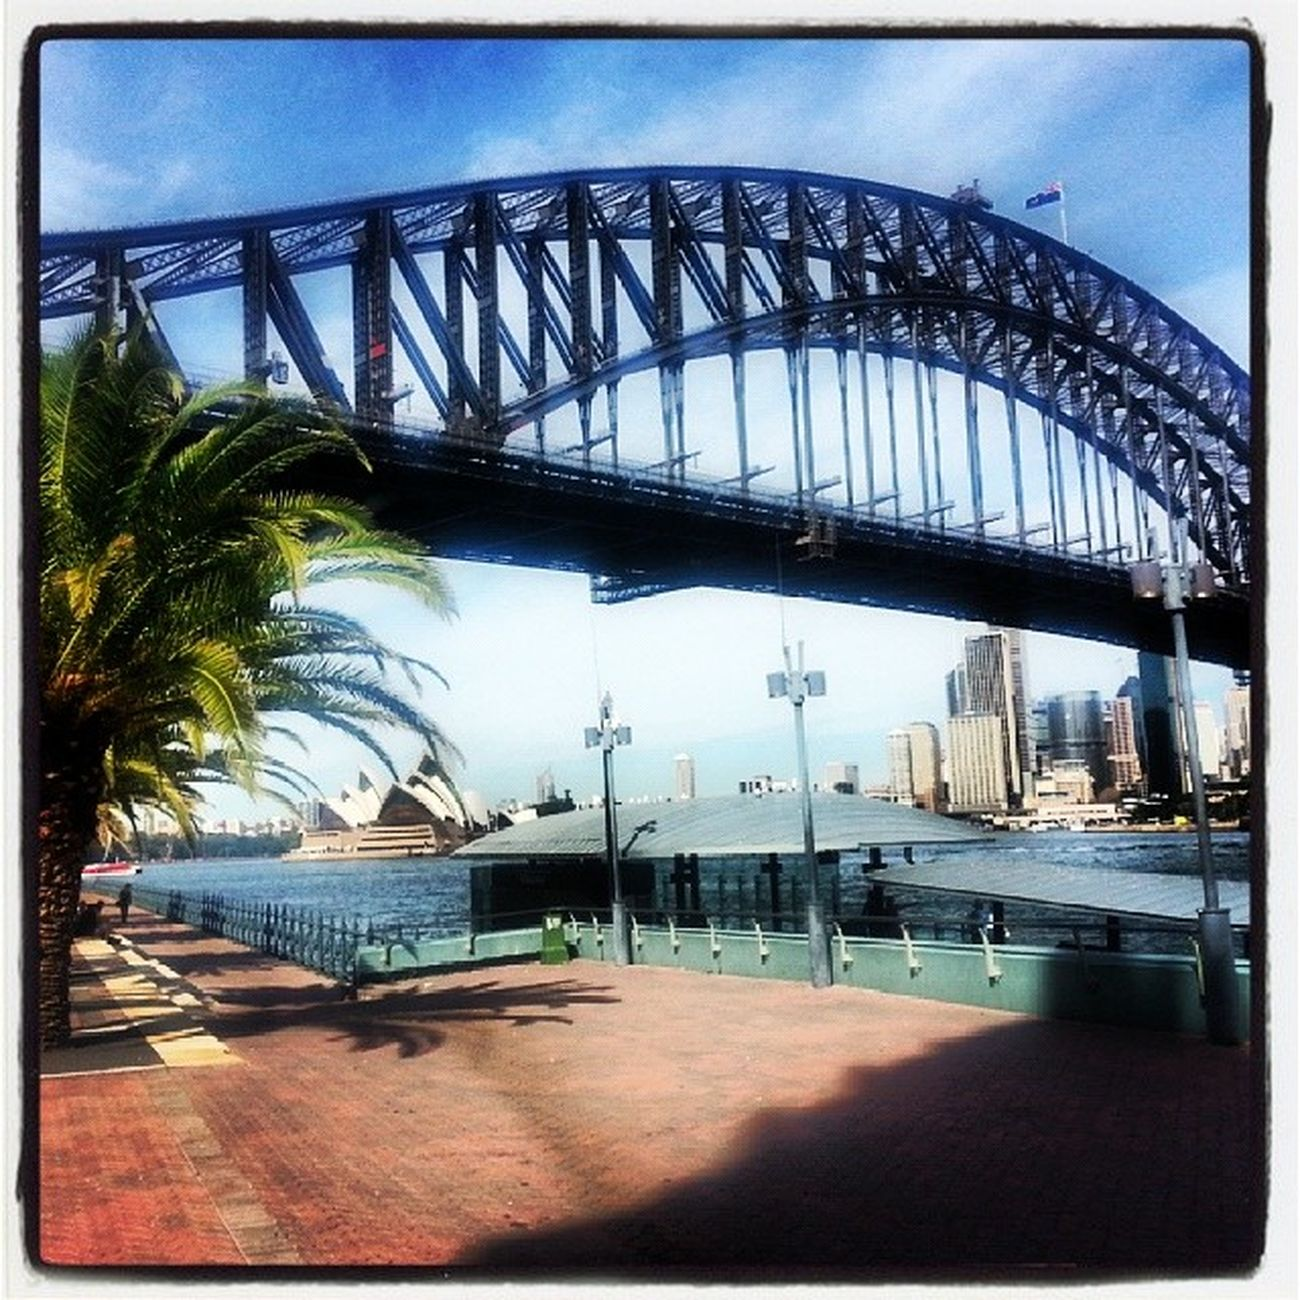 Sydney Harbour Bridge and the Opera House Justhadto Damnforeigners Imanimmigrant LOL beautiful iheartoz